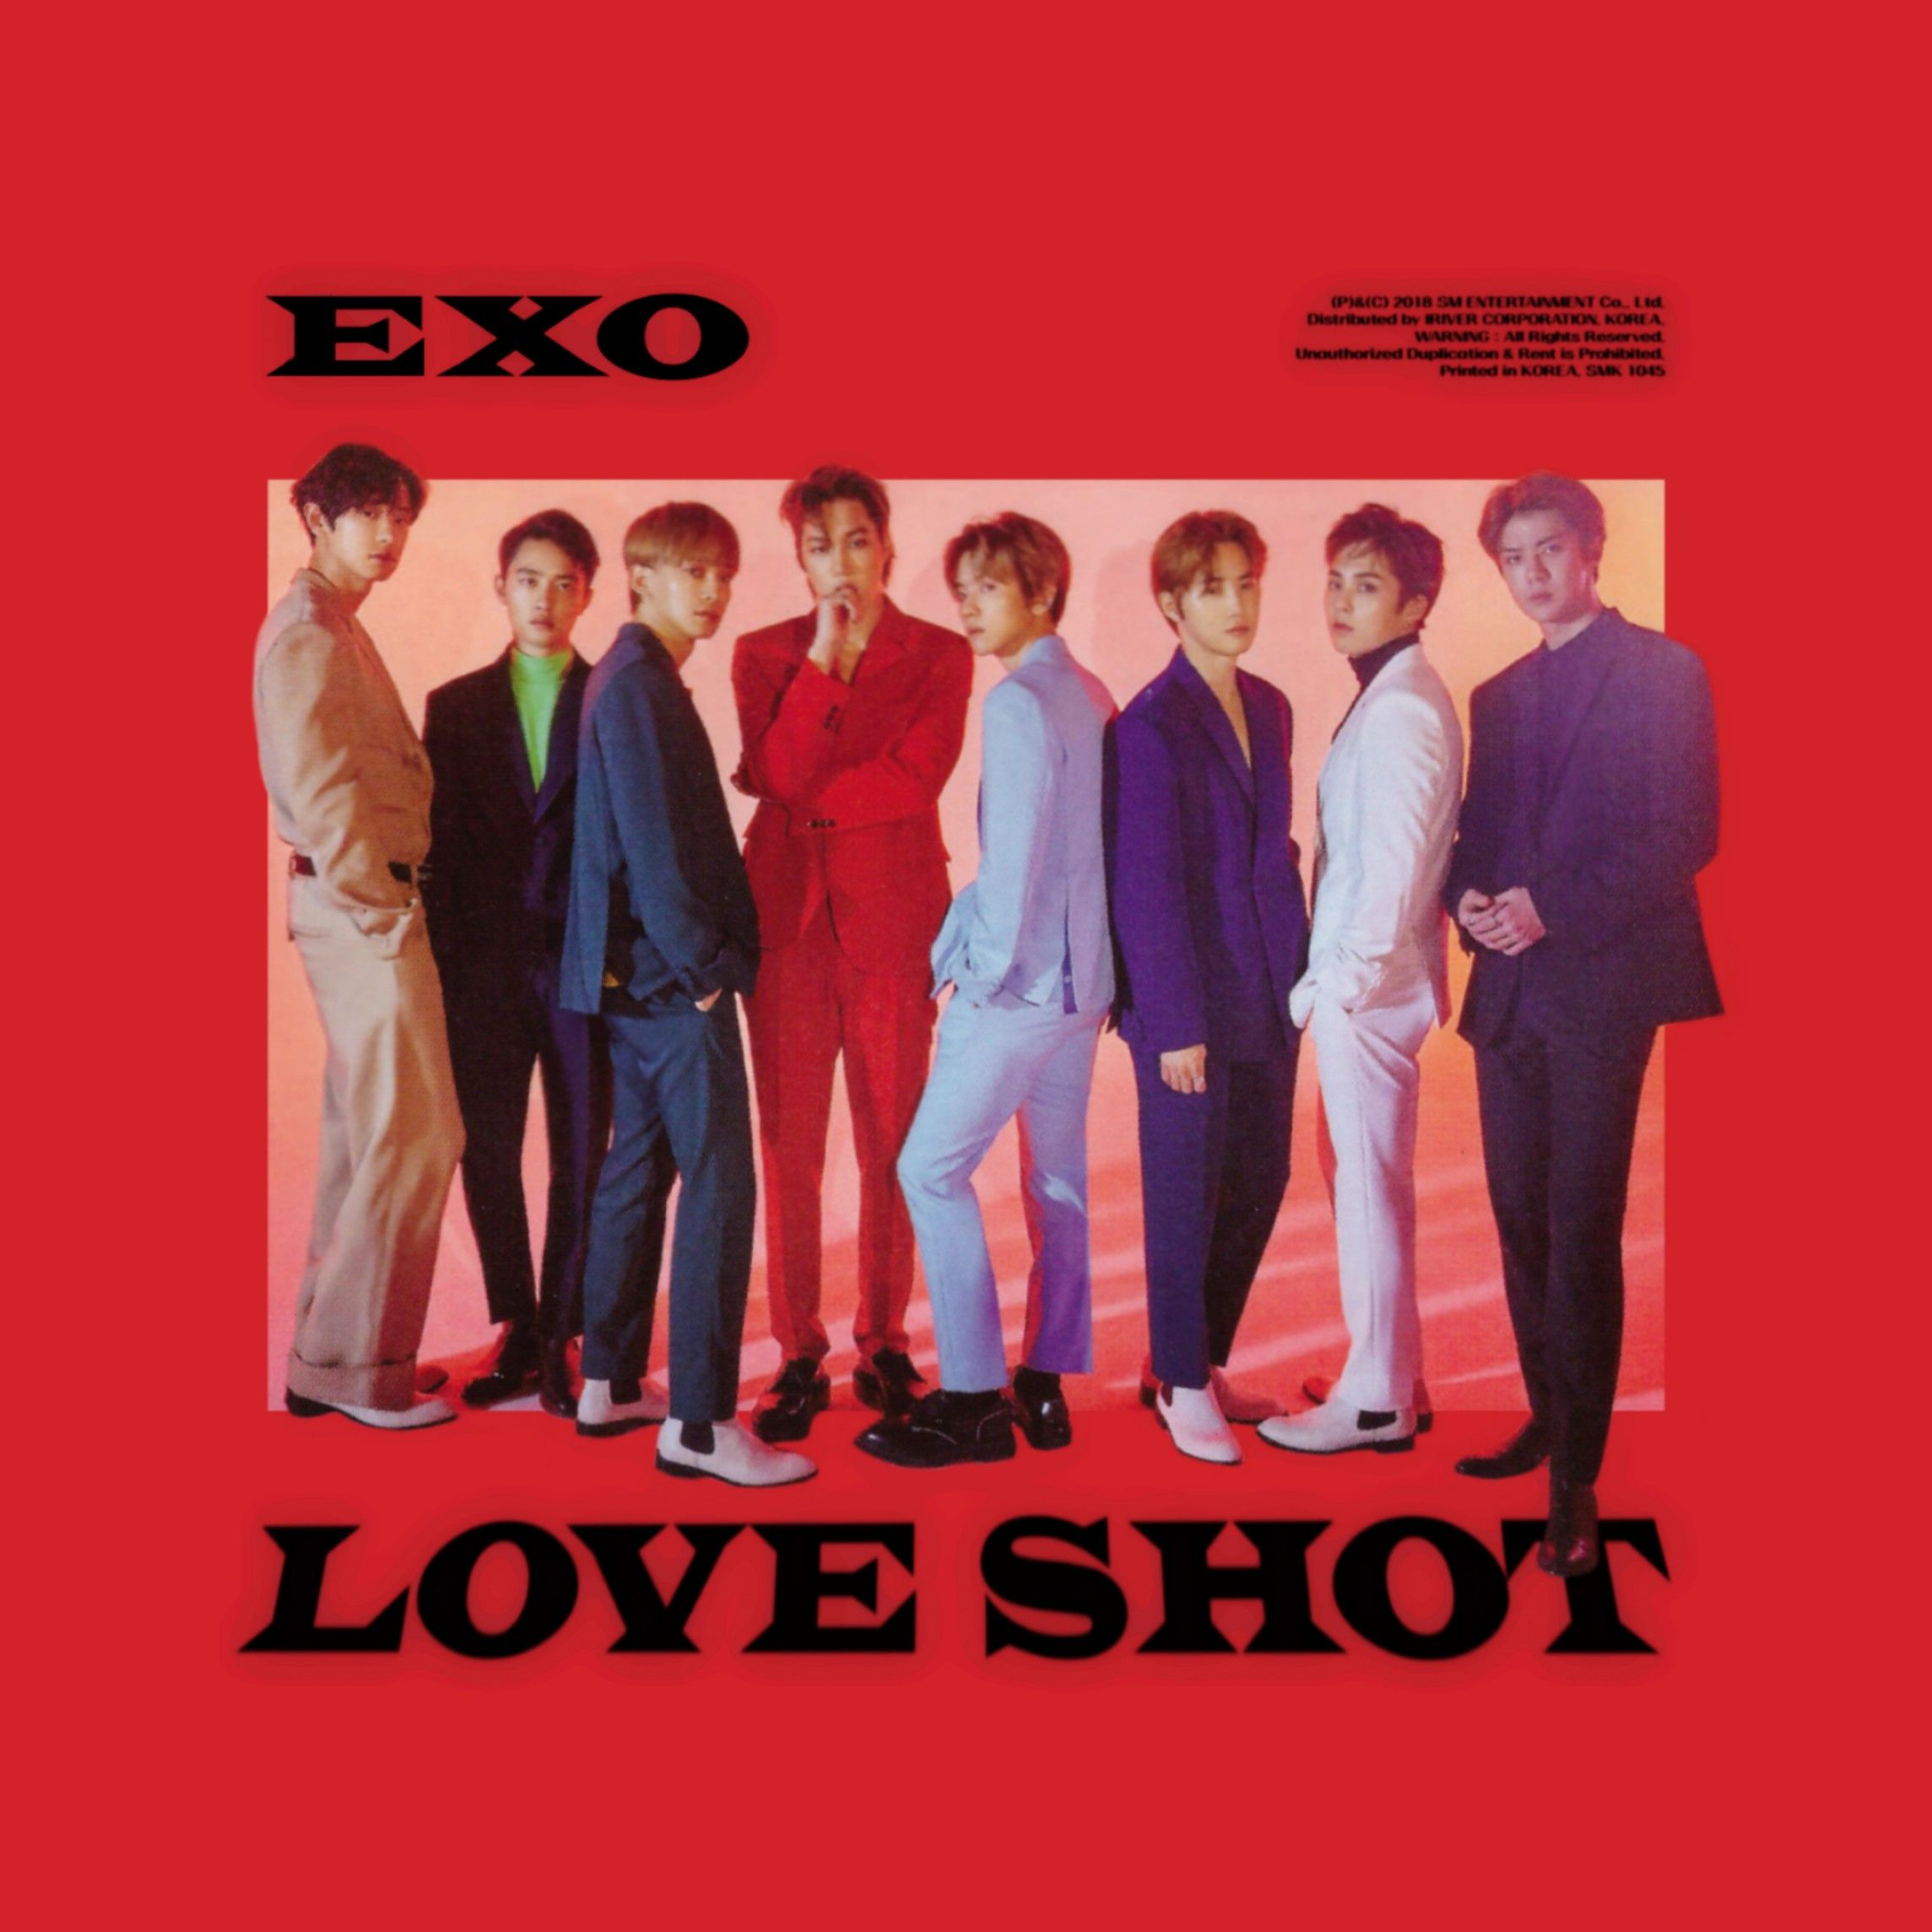 Exo Christmas Album Cover.Exo Love Shot Repackage Vol 5 Album Cover By Lealbum Exo